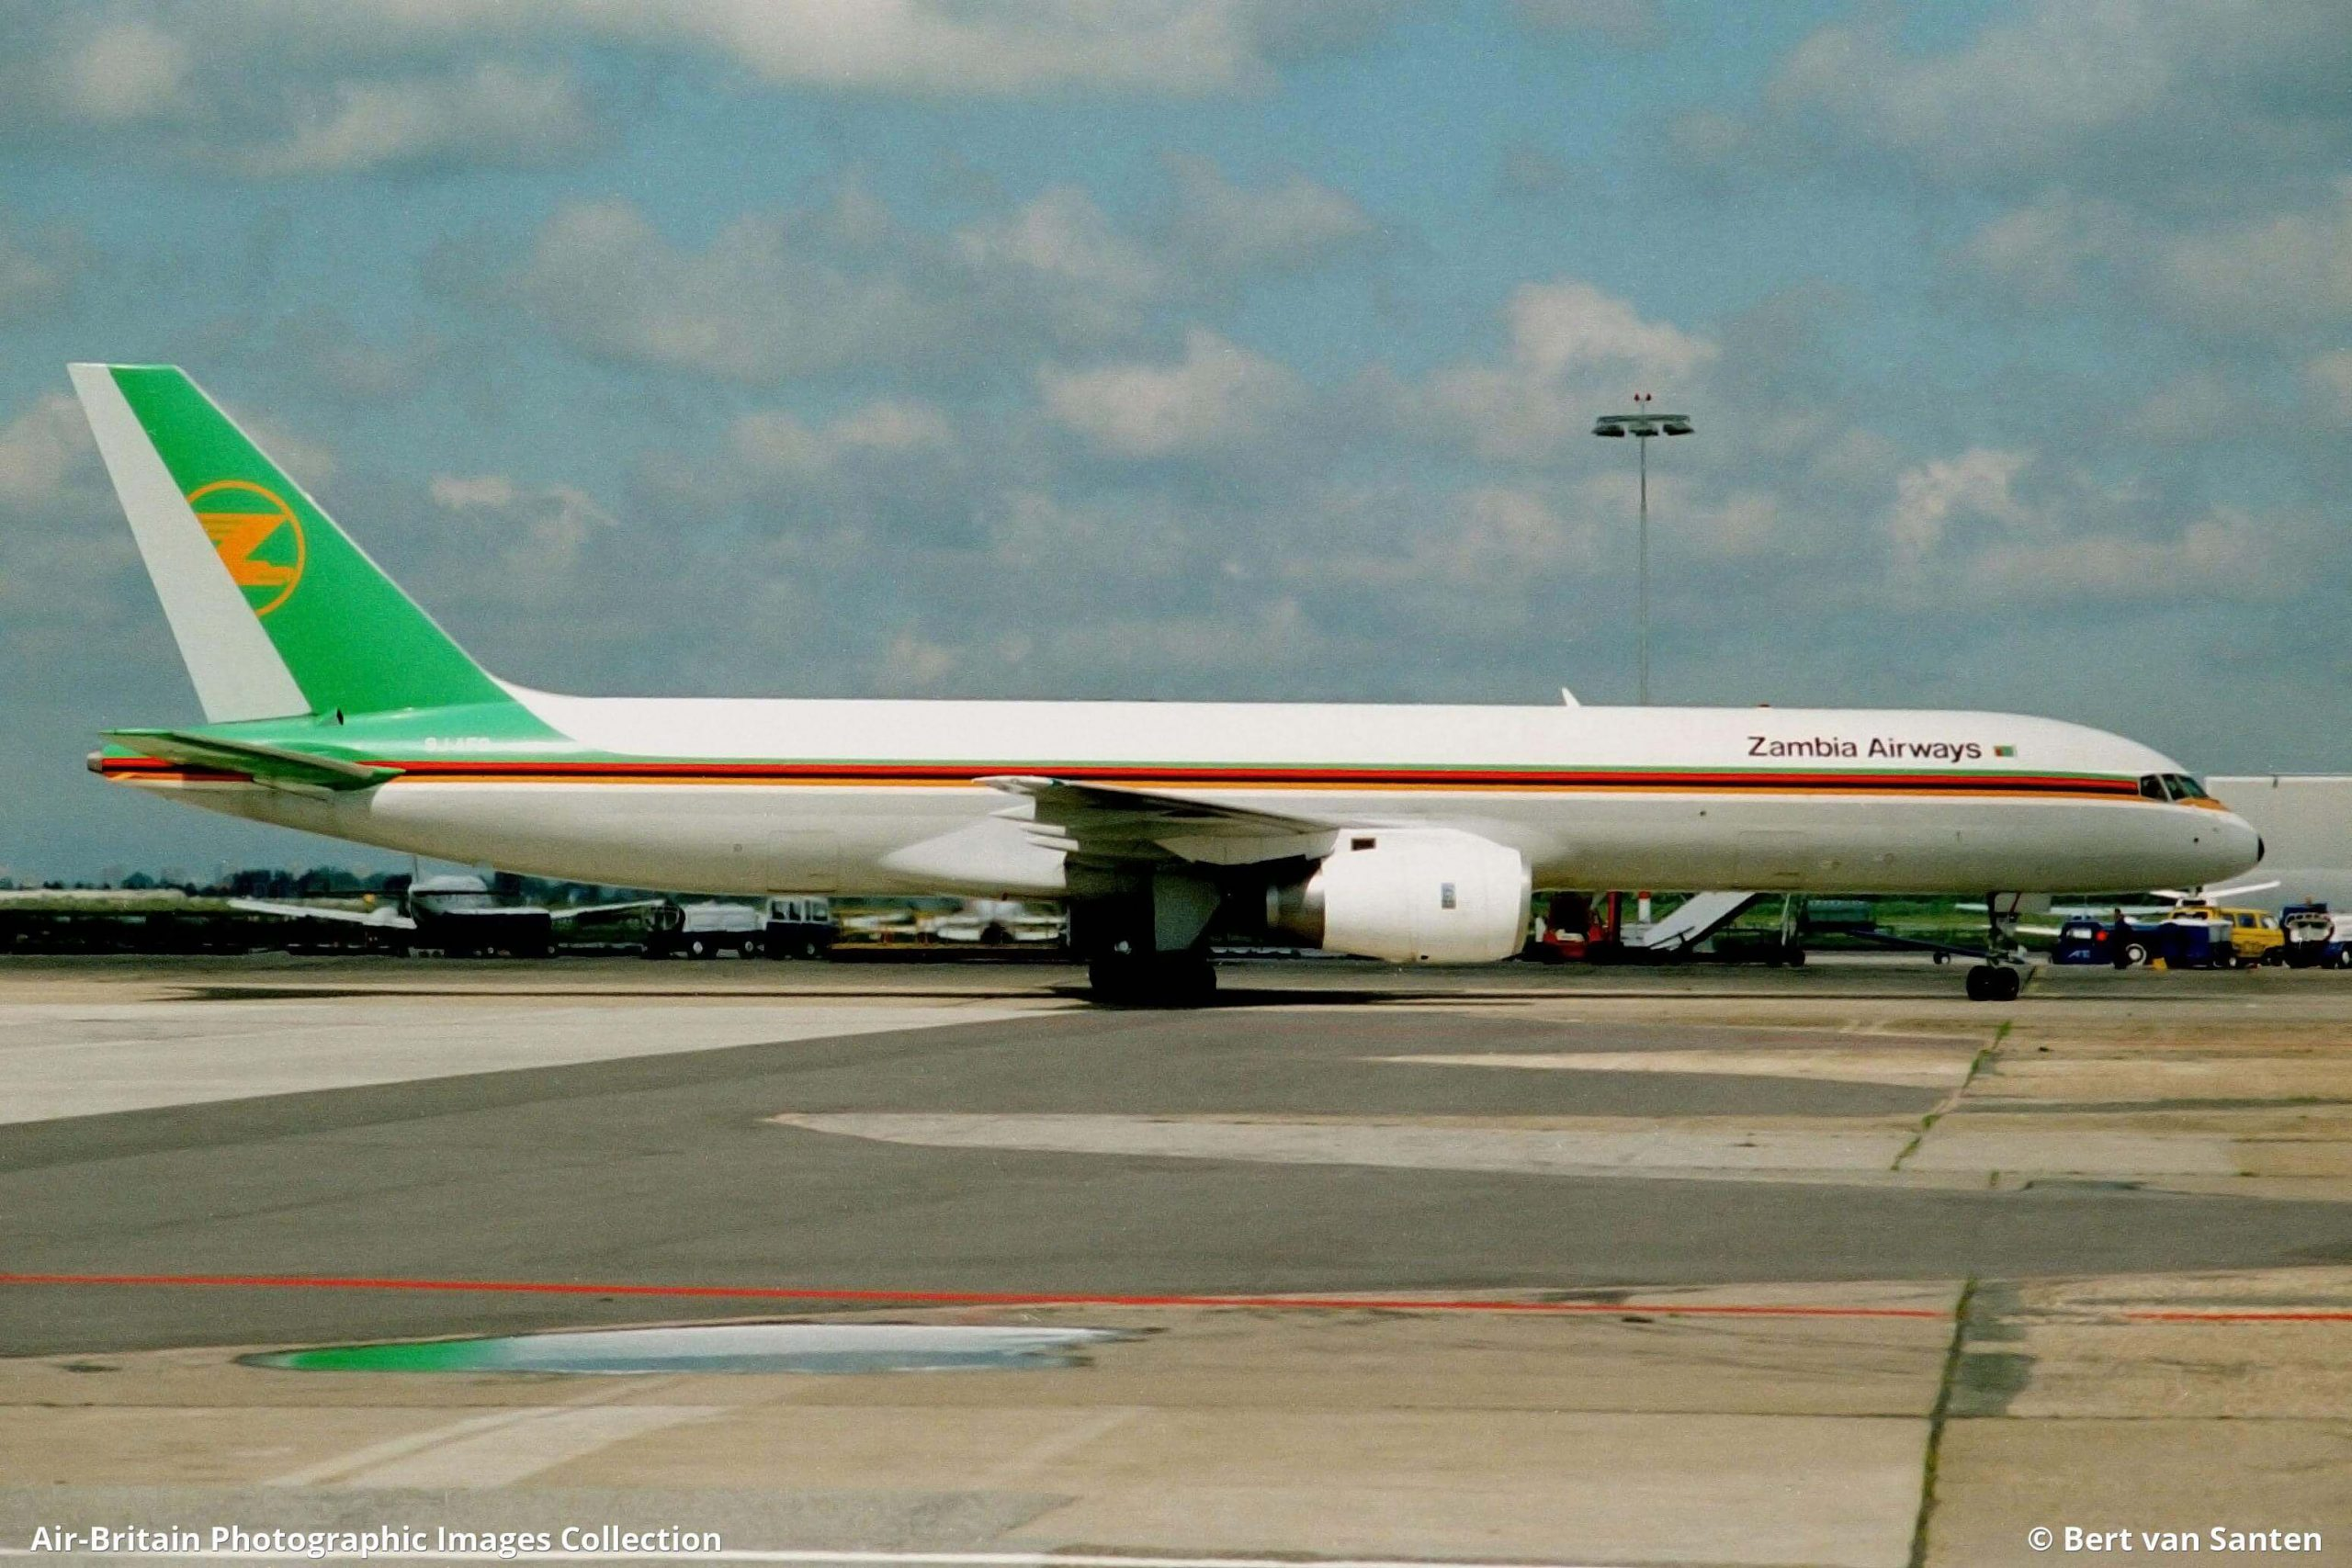 Air freight shipping from China to Zambia is convenient